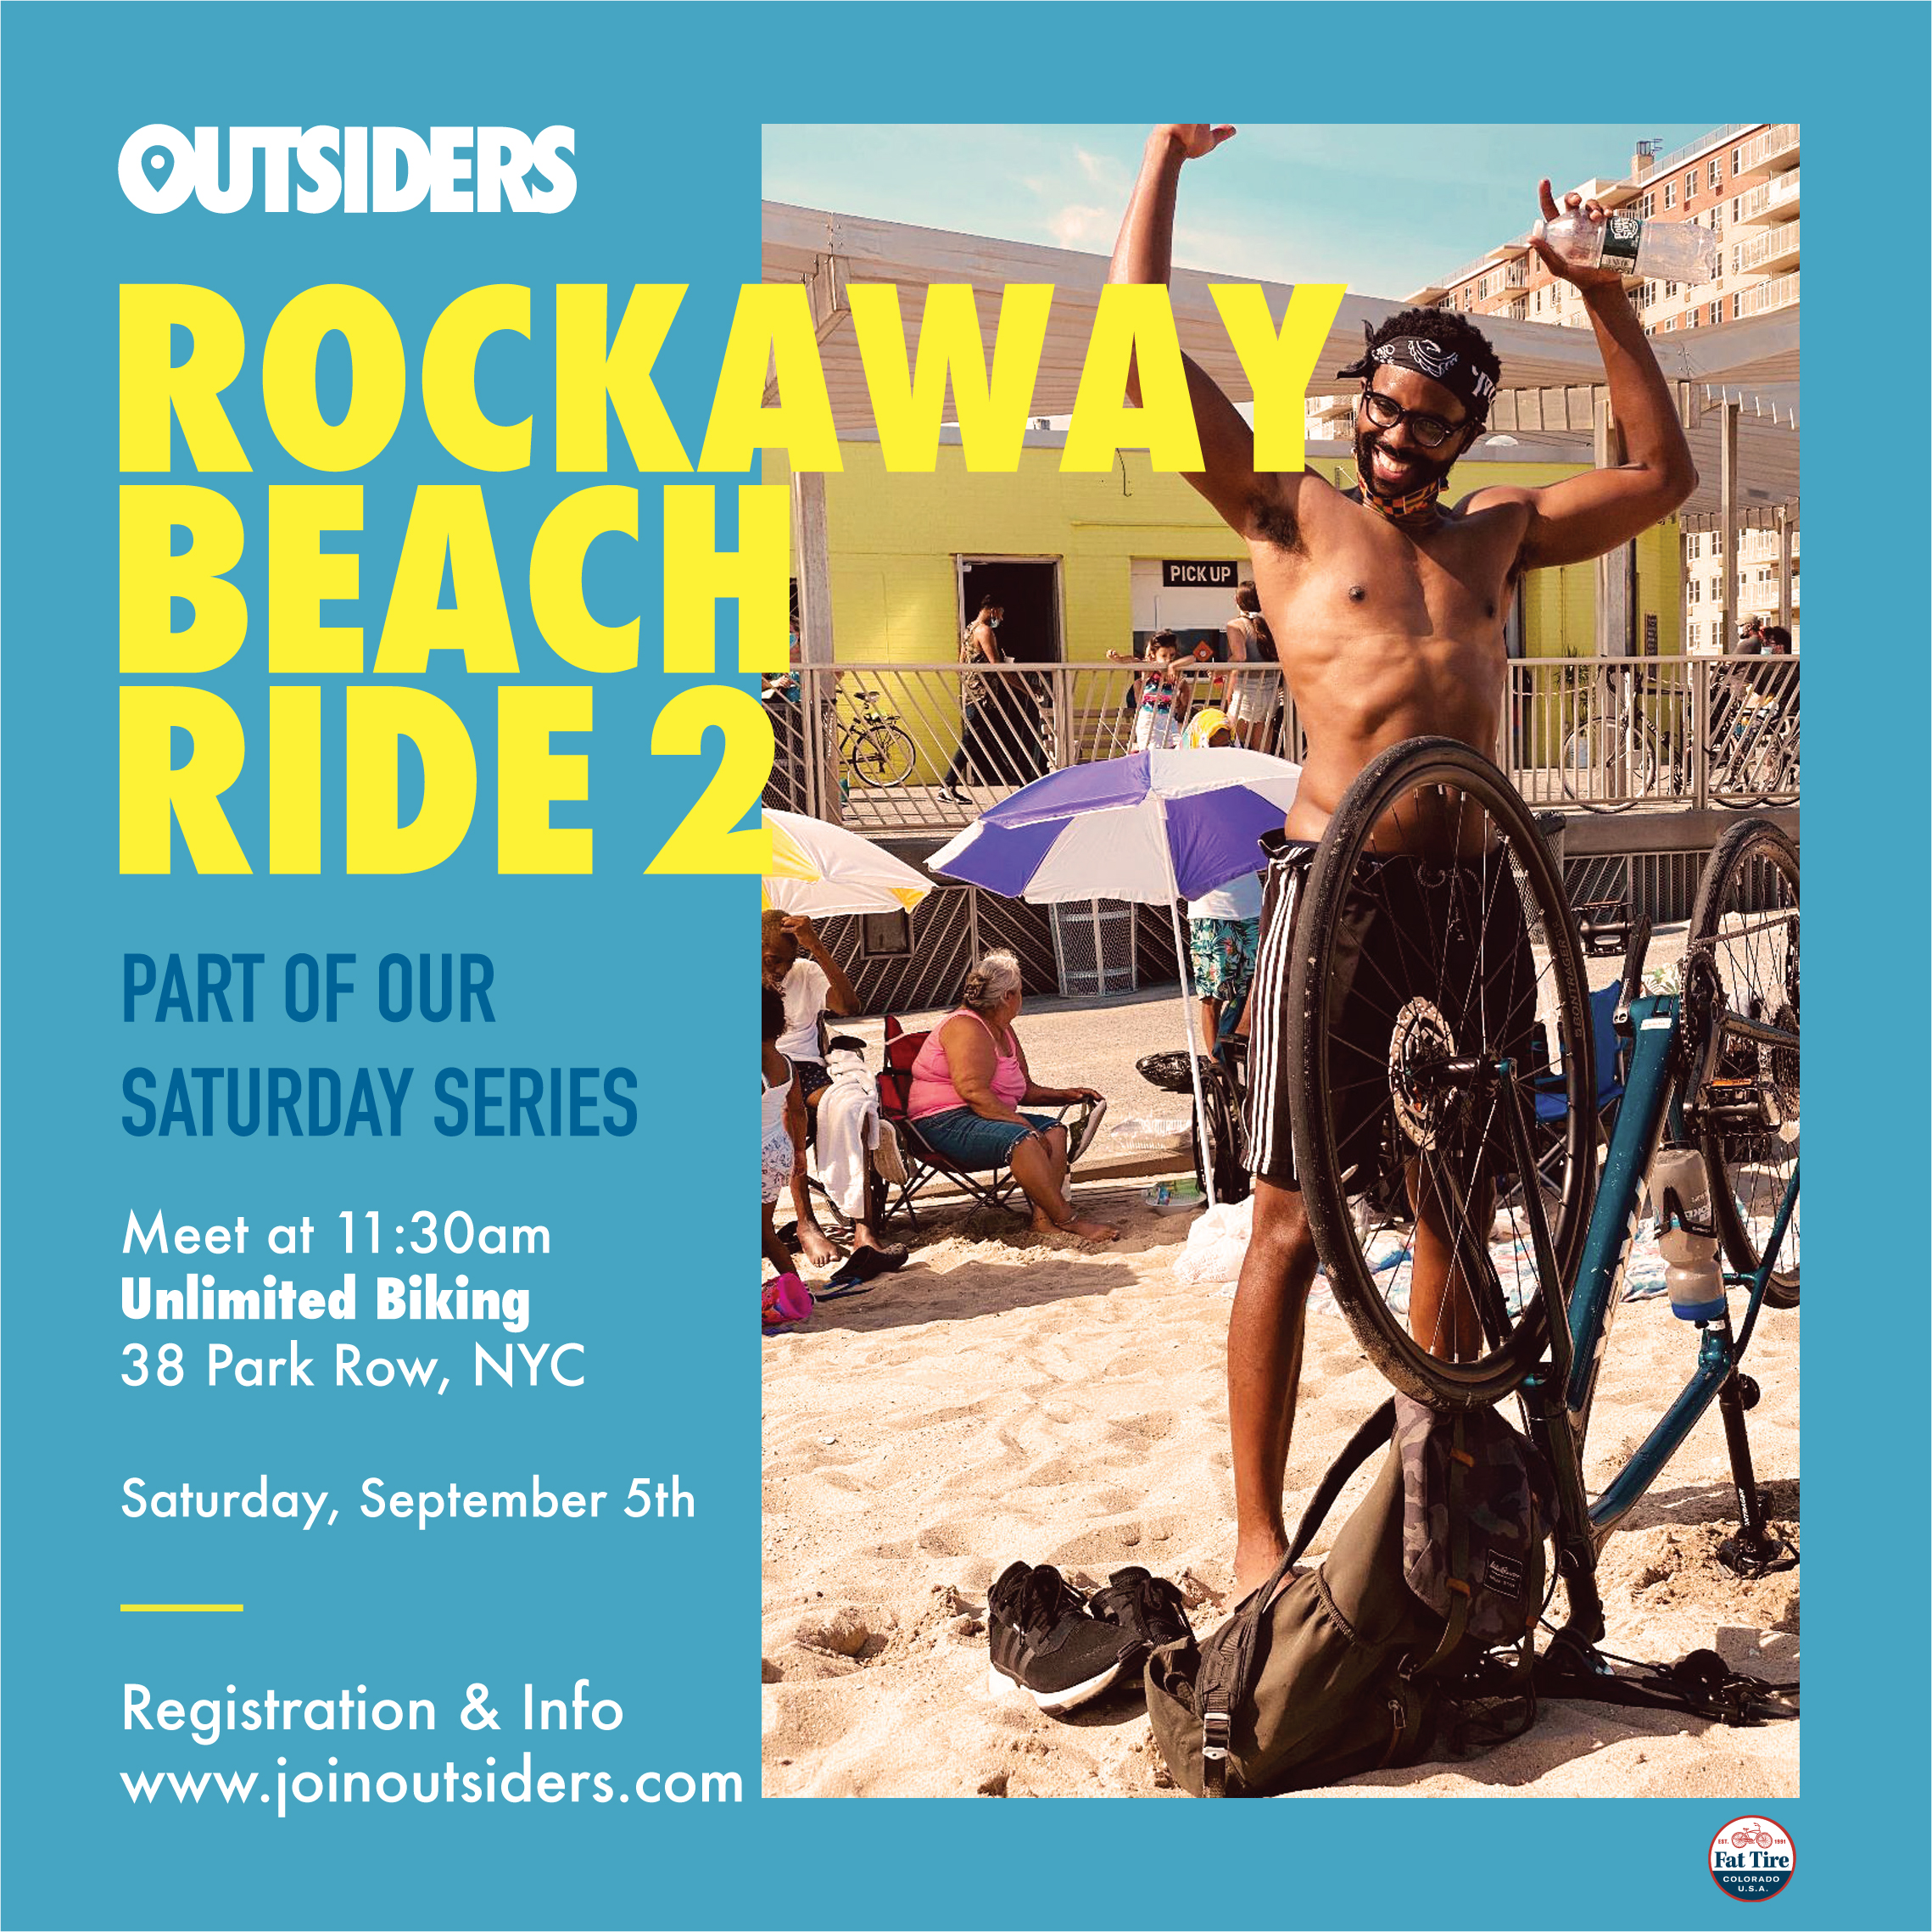 Rockaway Beach Ride 2